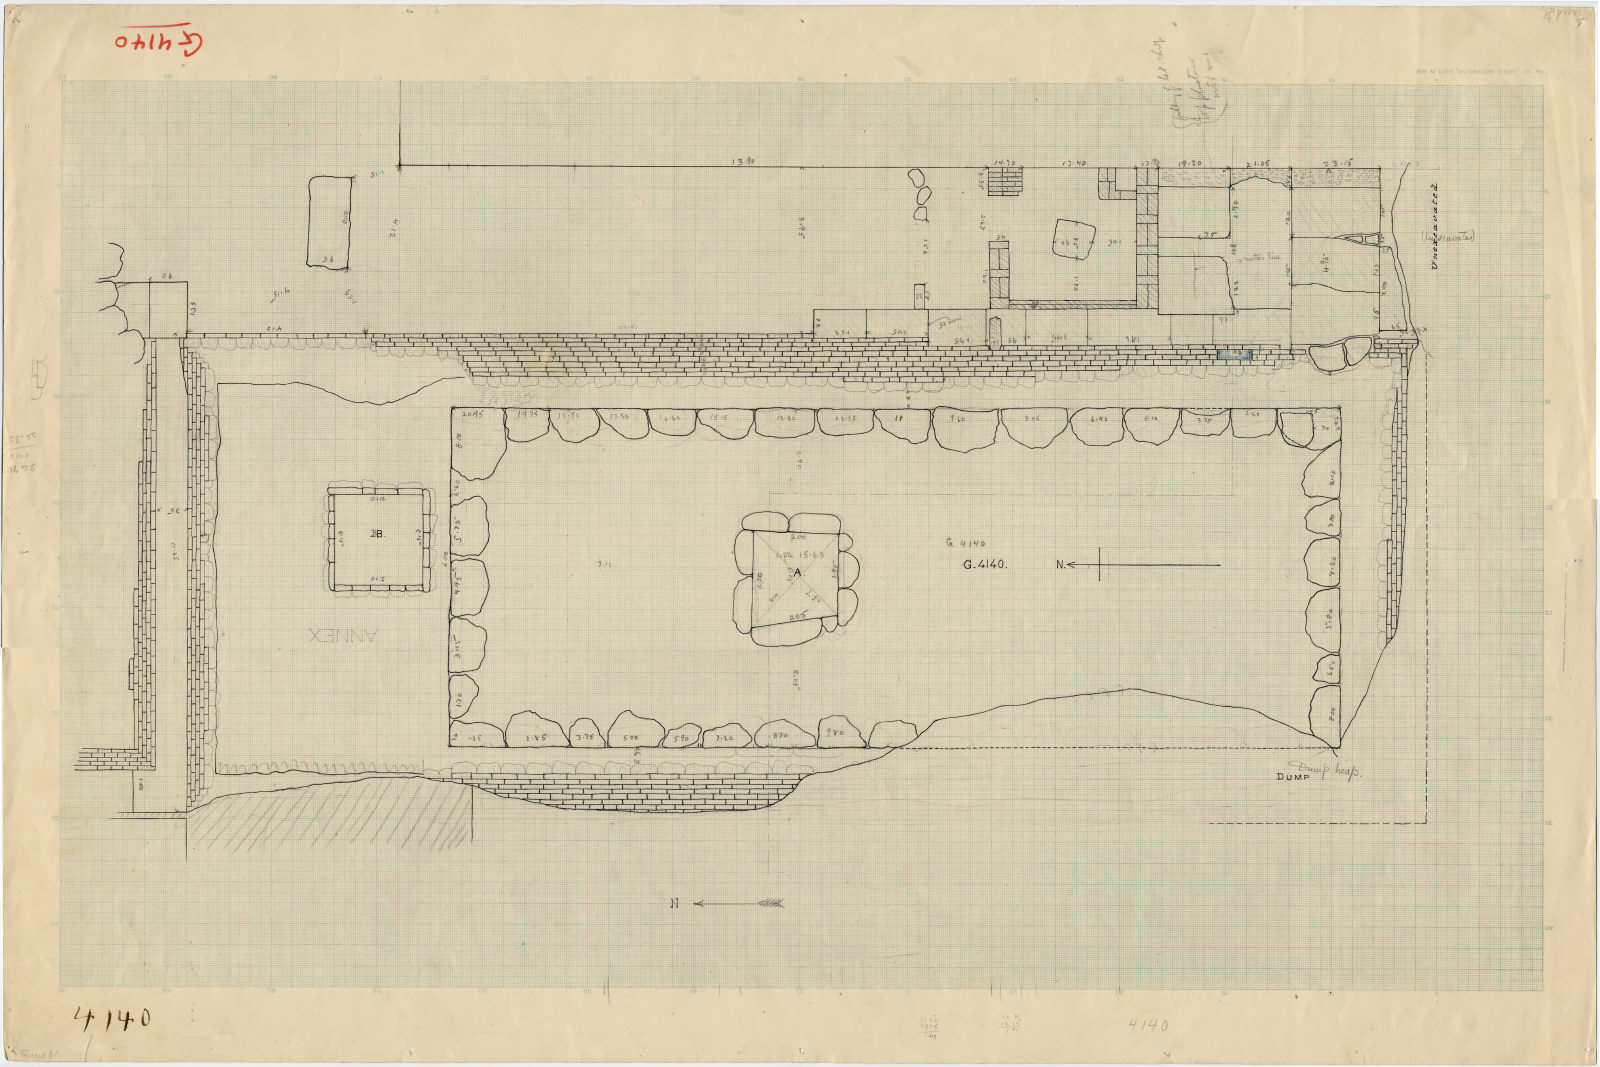 Maps and plans: G 4140, Plan